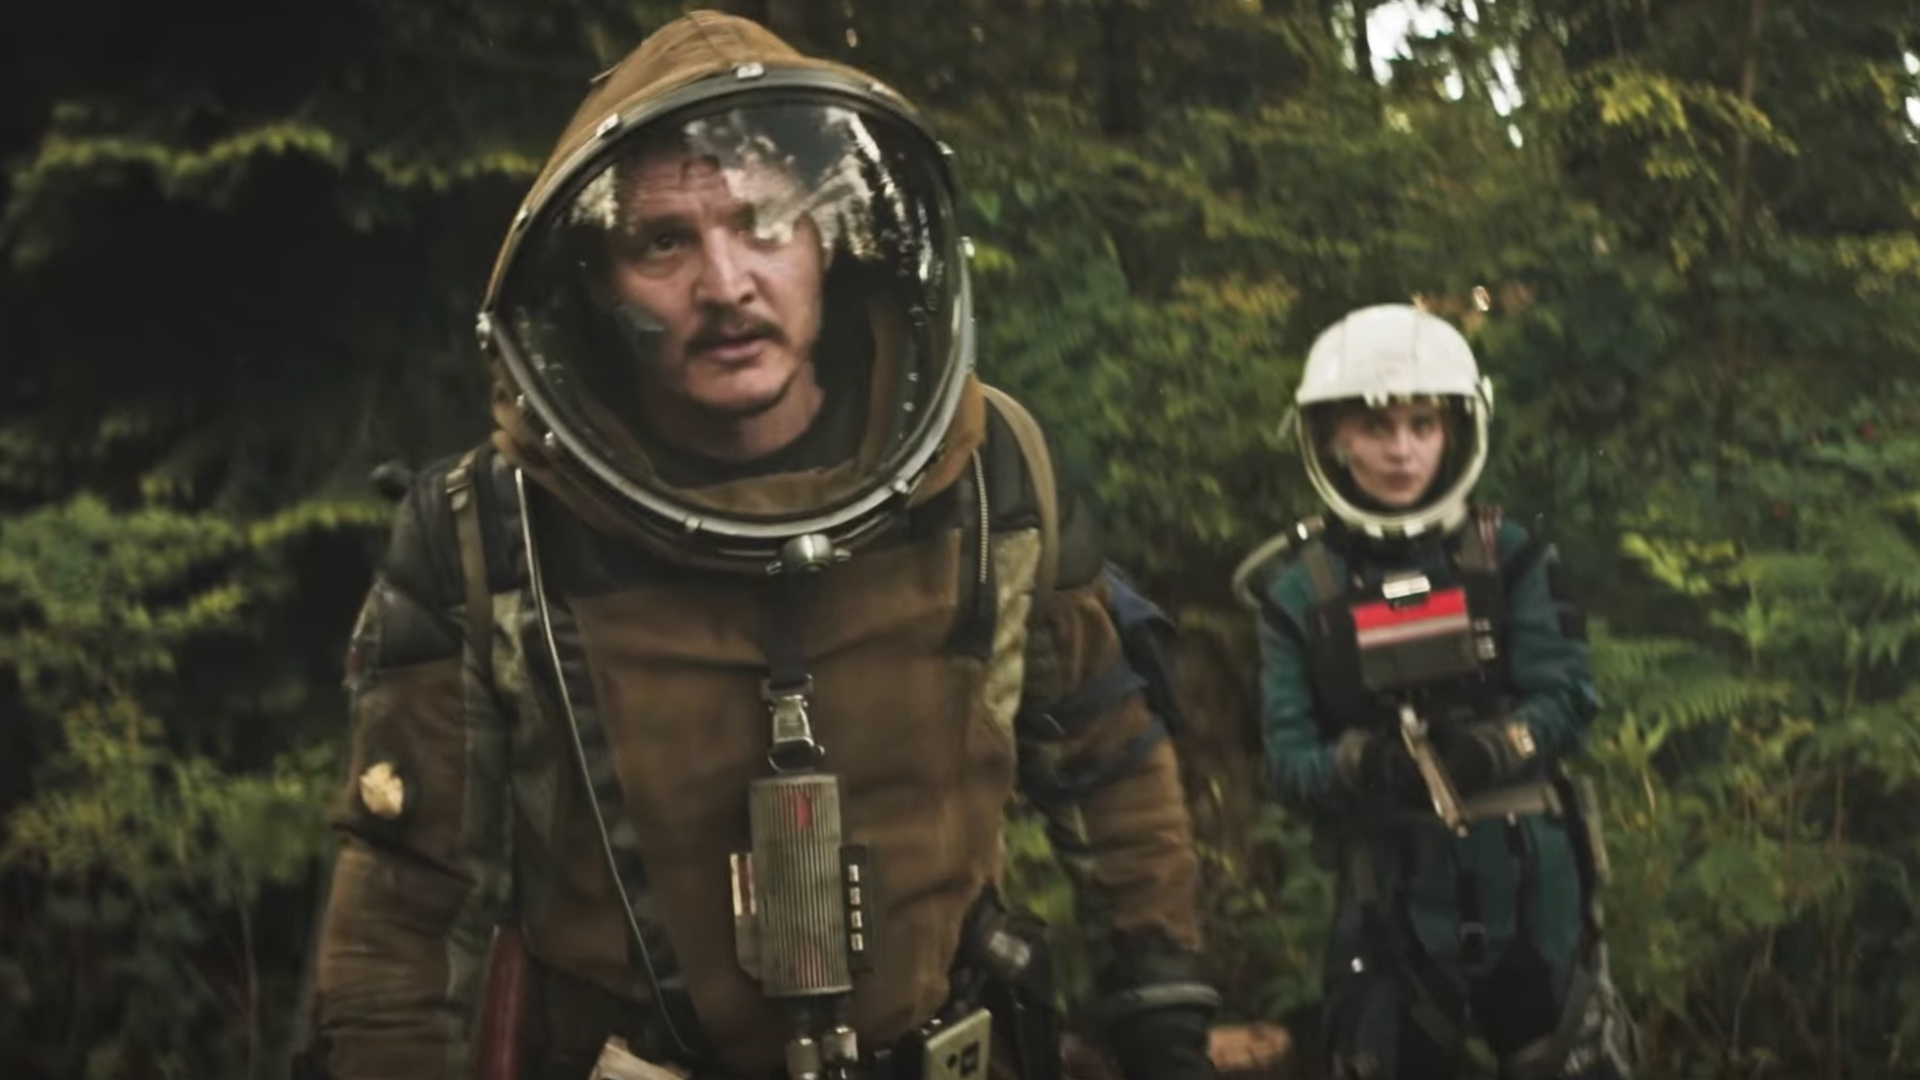 Pedro Pascal's new sci-fi thriller Prospect gives Star Wars fans a taste of what to expect.